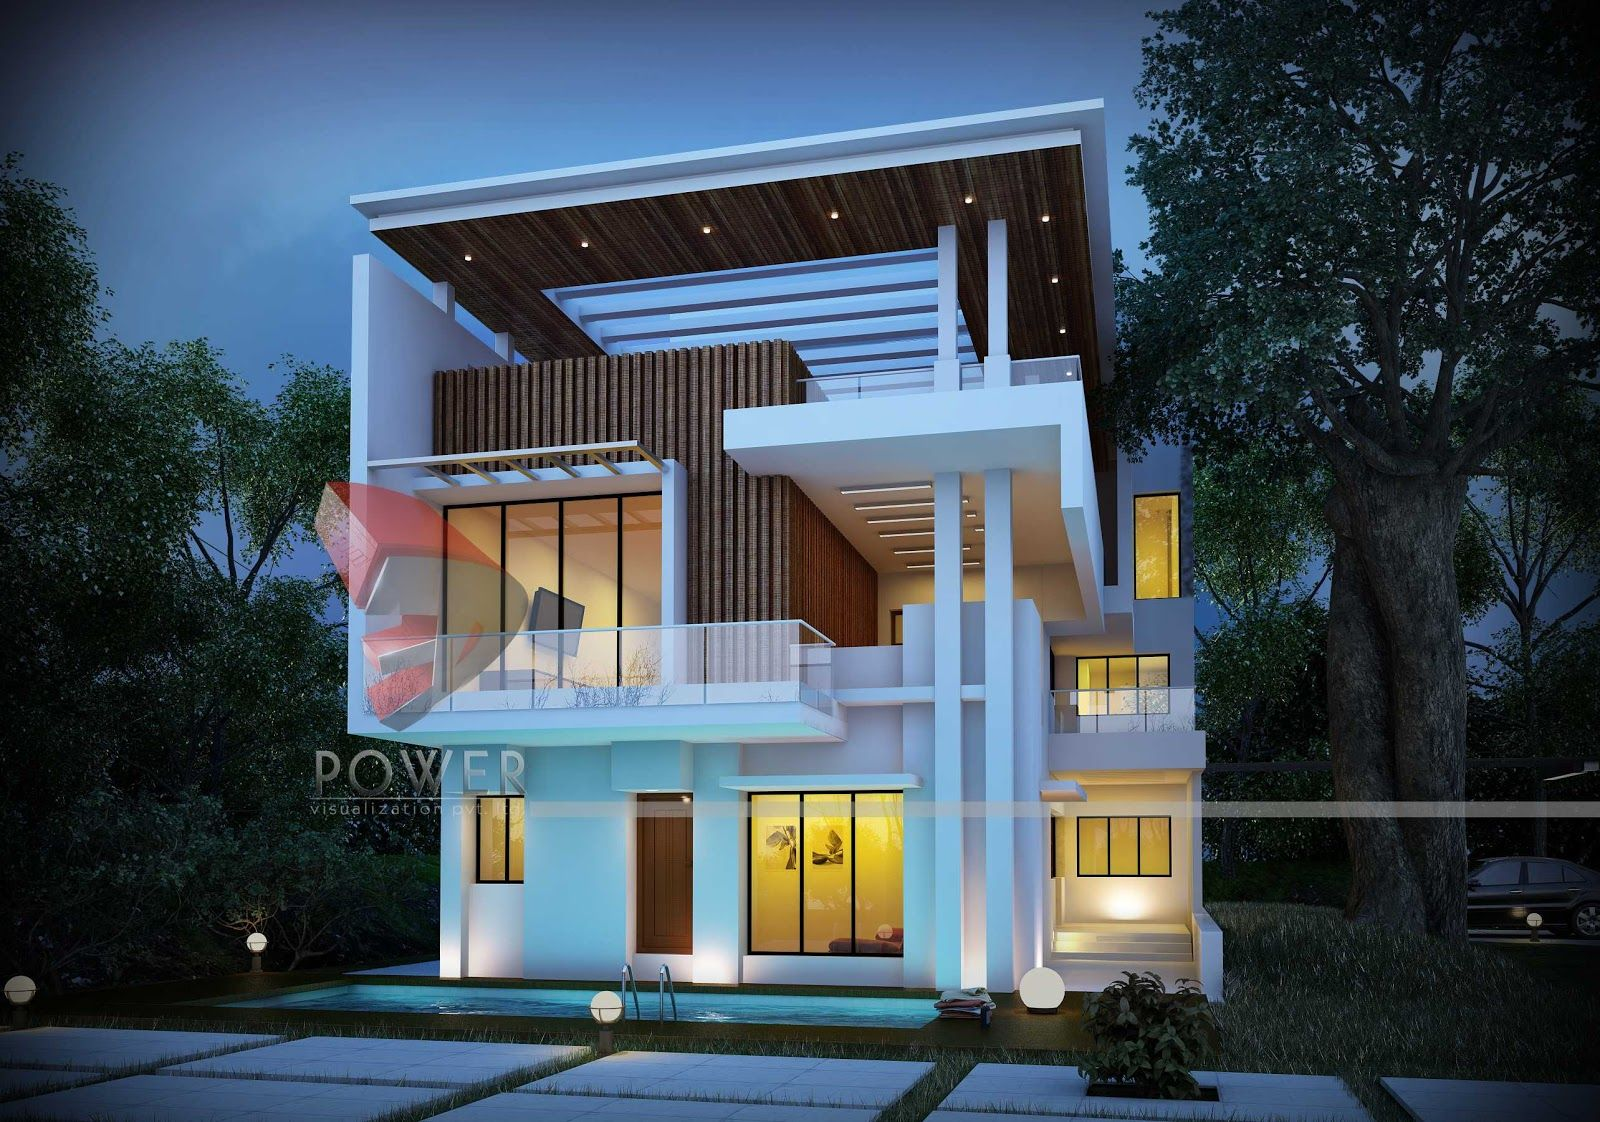 Modern architecture 3d architecture design modern for Home design ideas 3d